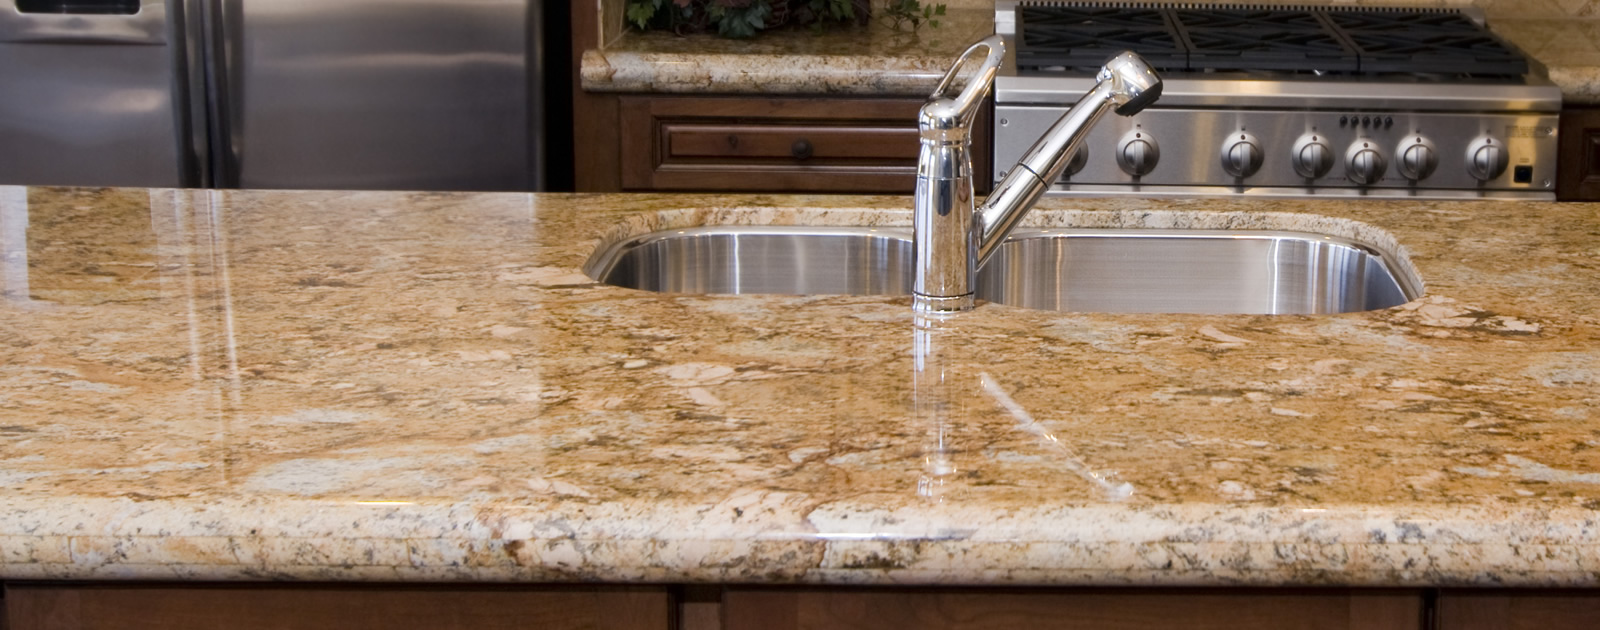 Countertops : Pin Level 1 Granite Countertops Colors on Pinterest